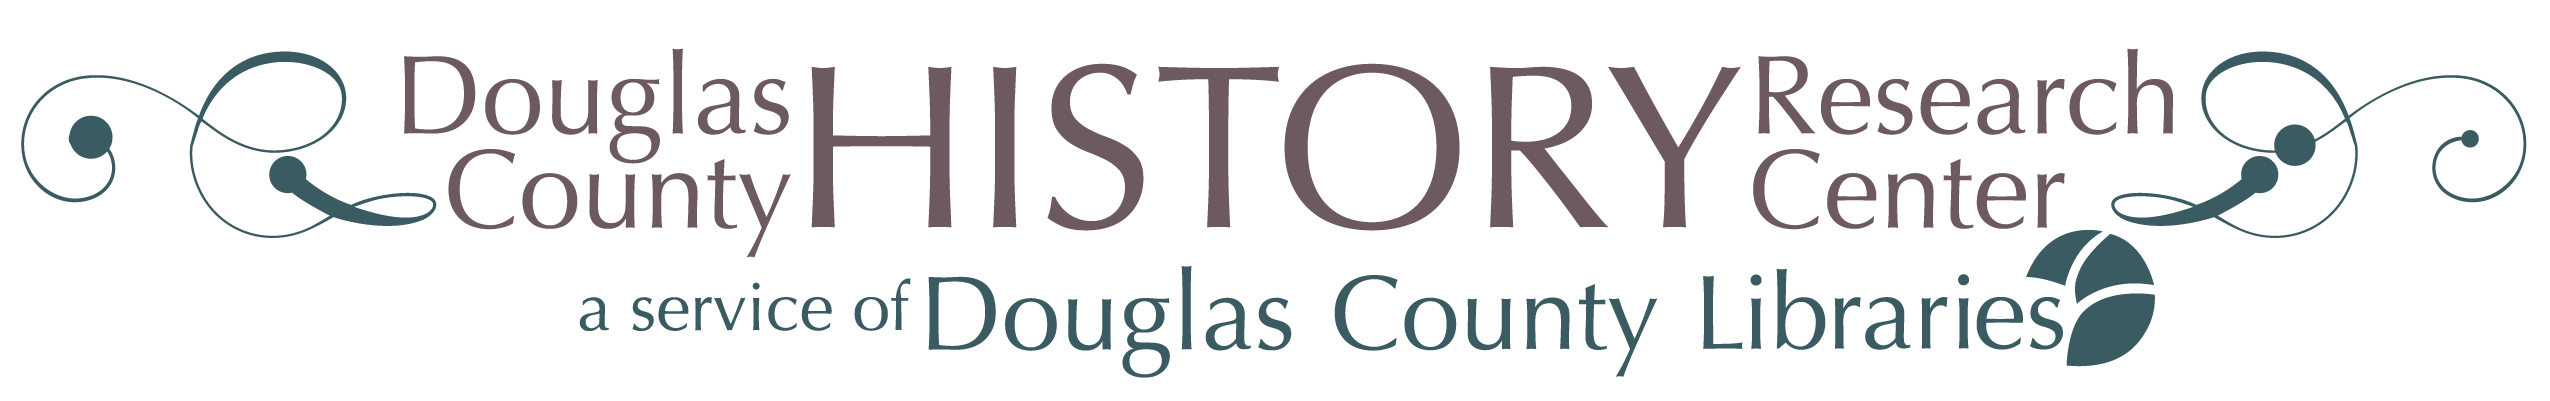 Logo van het Douglas County History Research Center